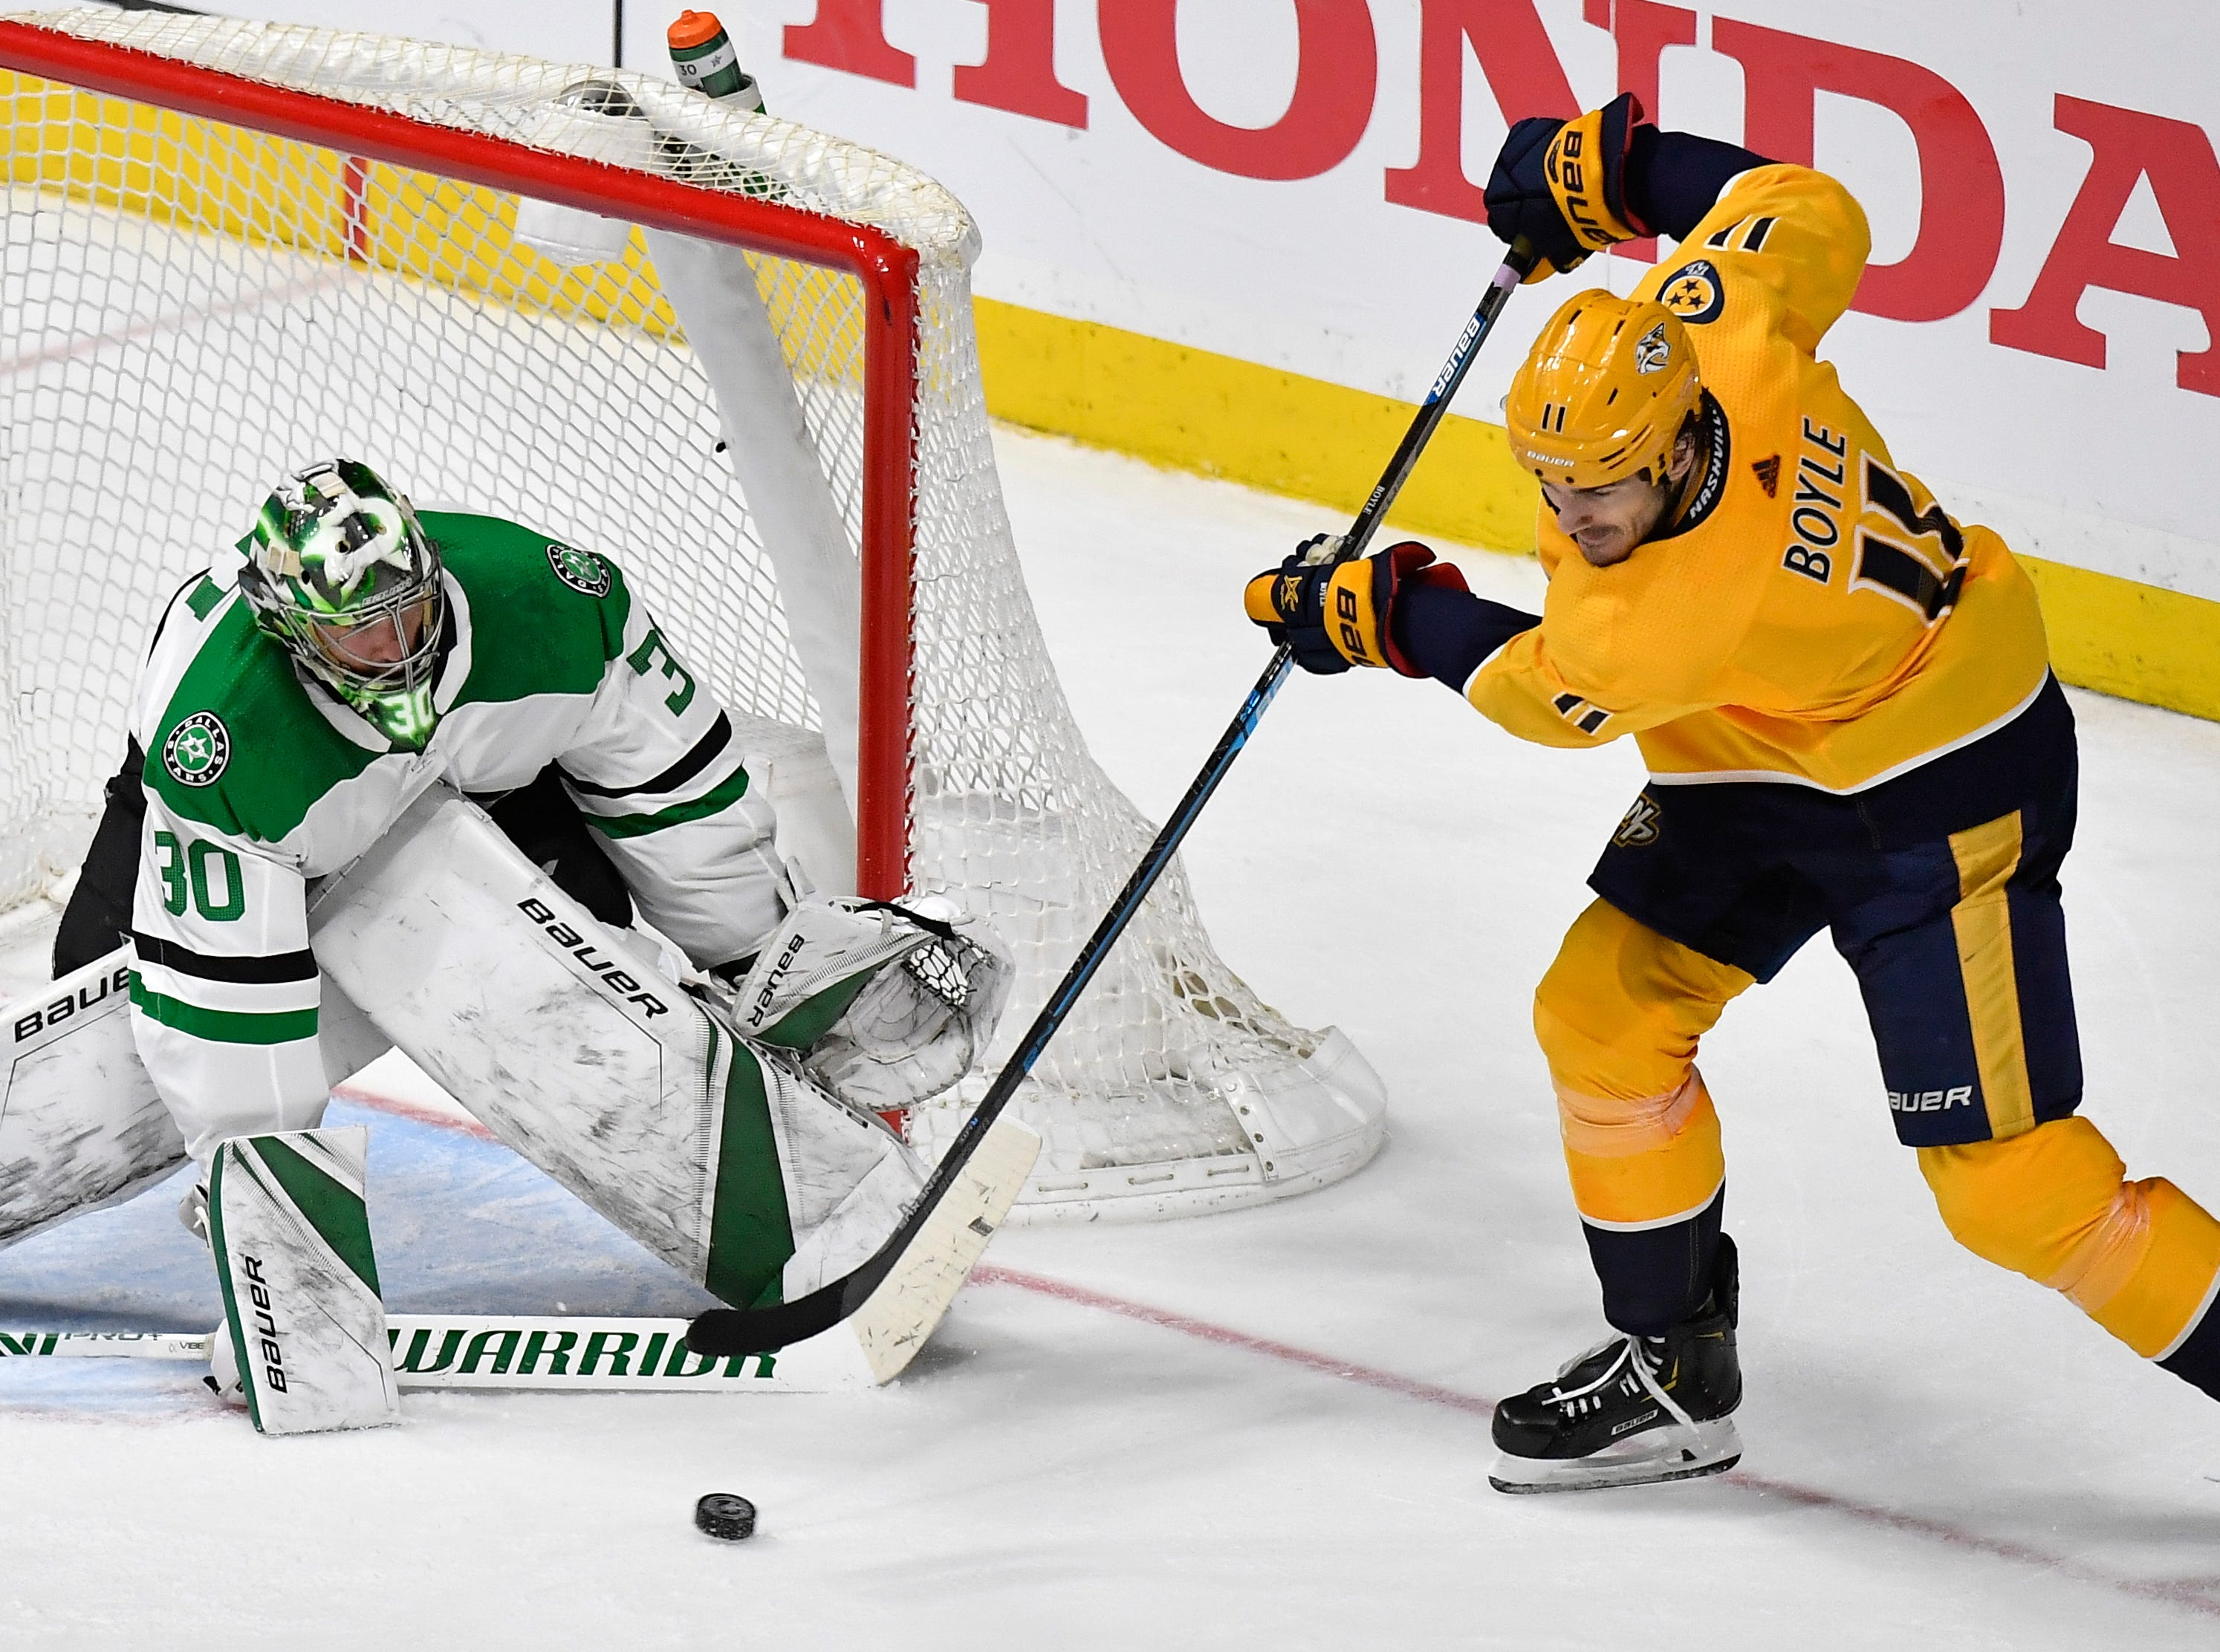 Nashville Predators center Brian Boyle (11) plays the puck in front of Dallas Stars goaltender Ben Bishop (30) during the third period of the divisional semifinal game at Bridgestone Arena in Nashville, Tenn., Wednesday, April 10, 2019.